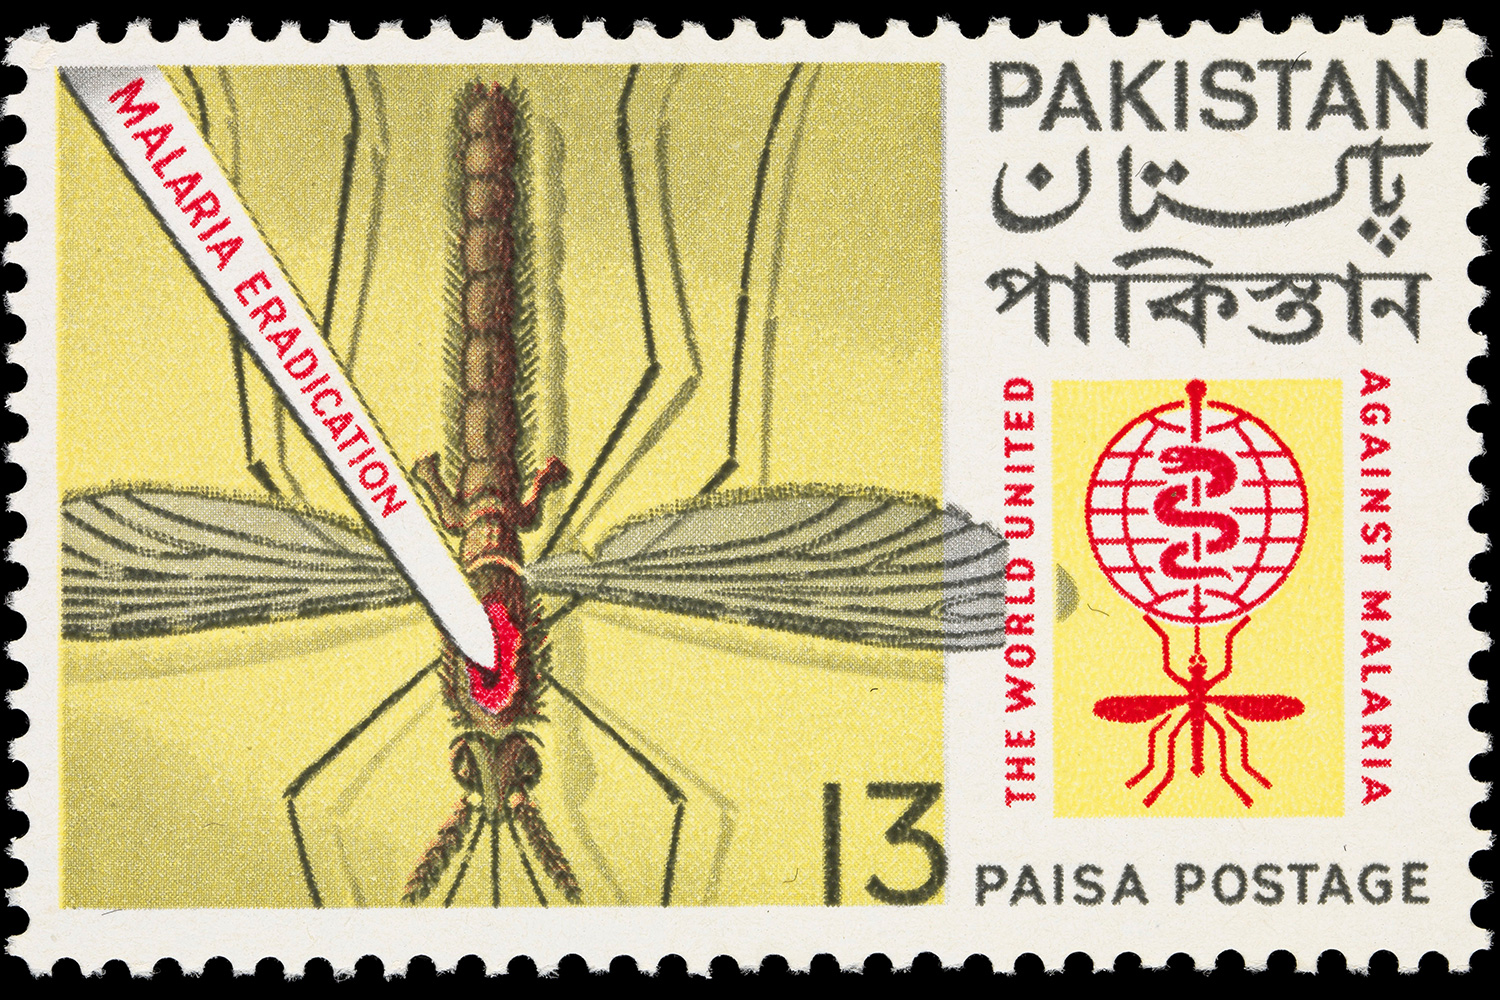 The stamp has a large mosquito being pierced by the words: Malaria eradication. Also  on the stamp are the words, the world united against malaria : 13 paisa postage / Pakistan.